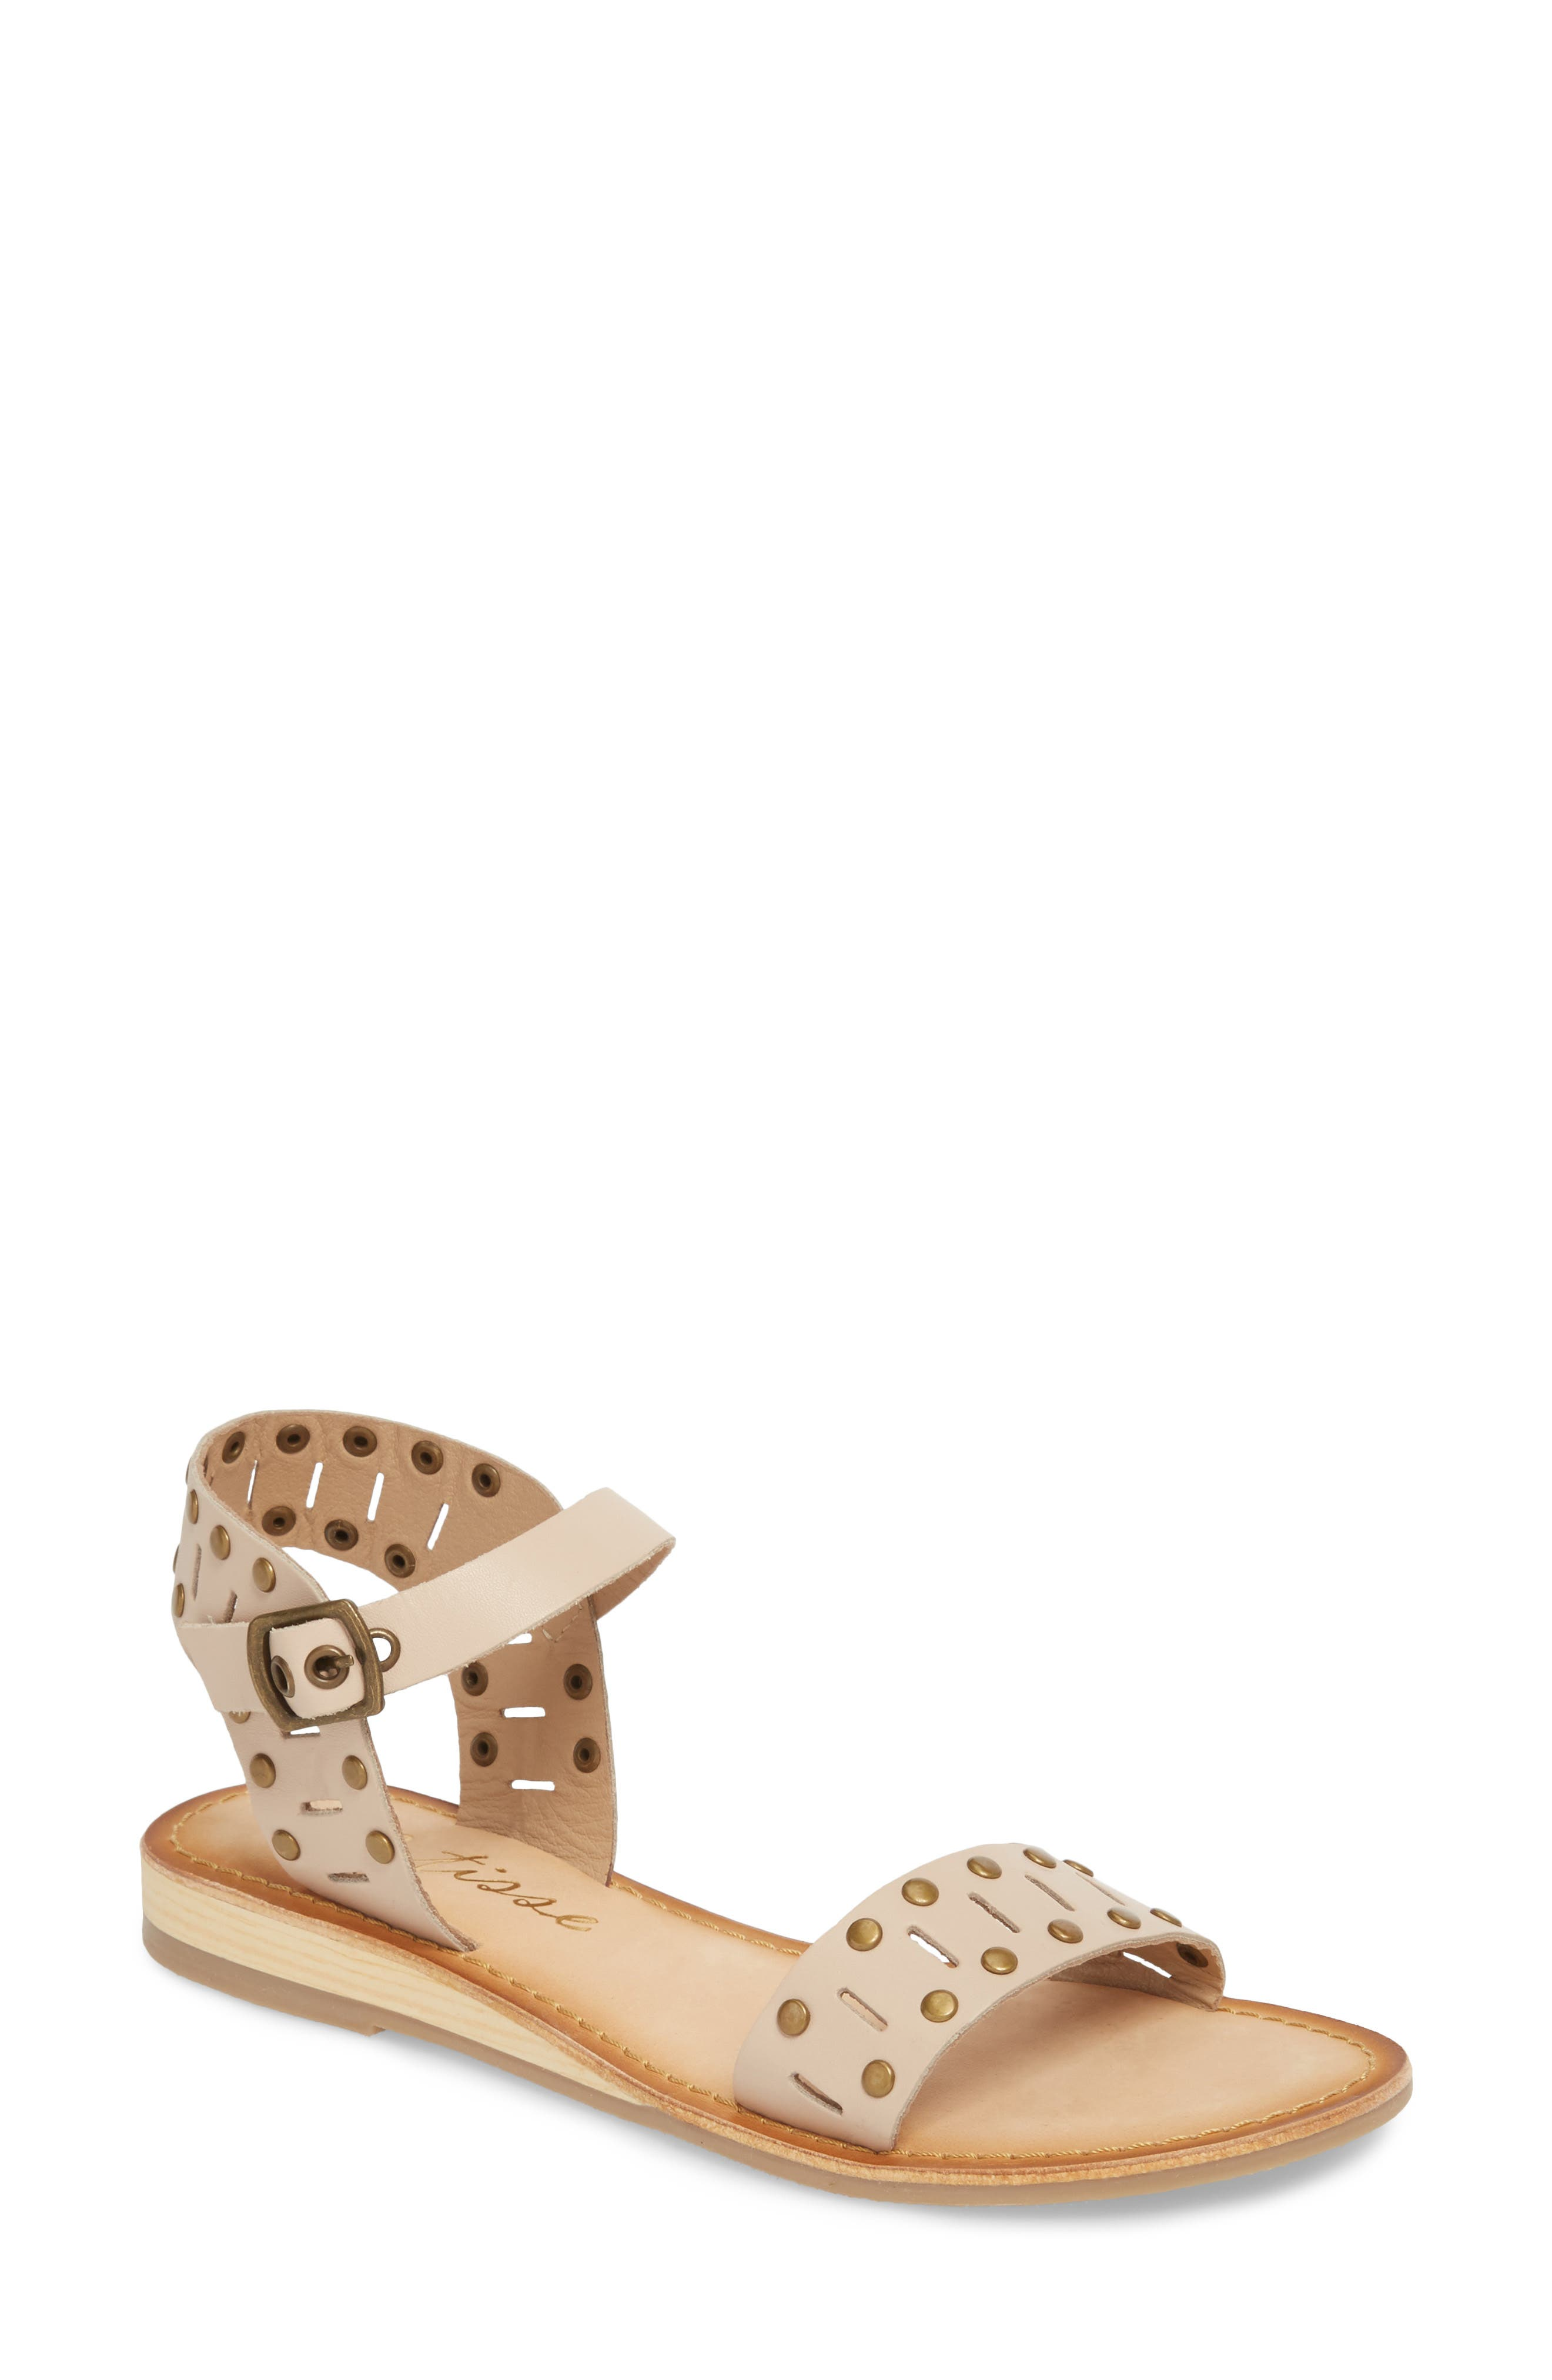 Ravenna Quarter Strap Sandal,                             Main thumbnail 1, color,                             NATURAL LEATHER